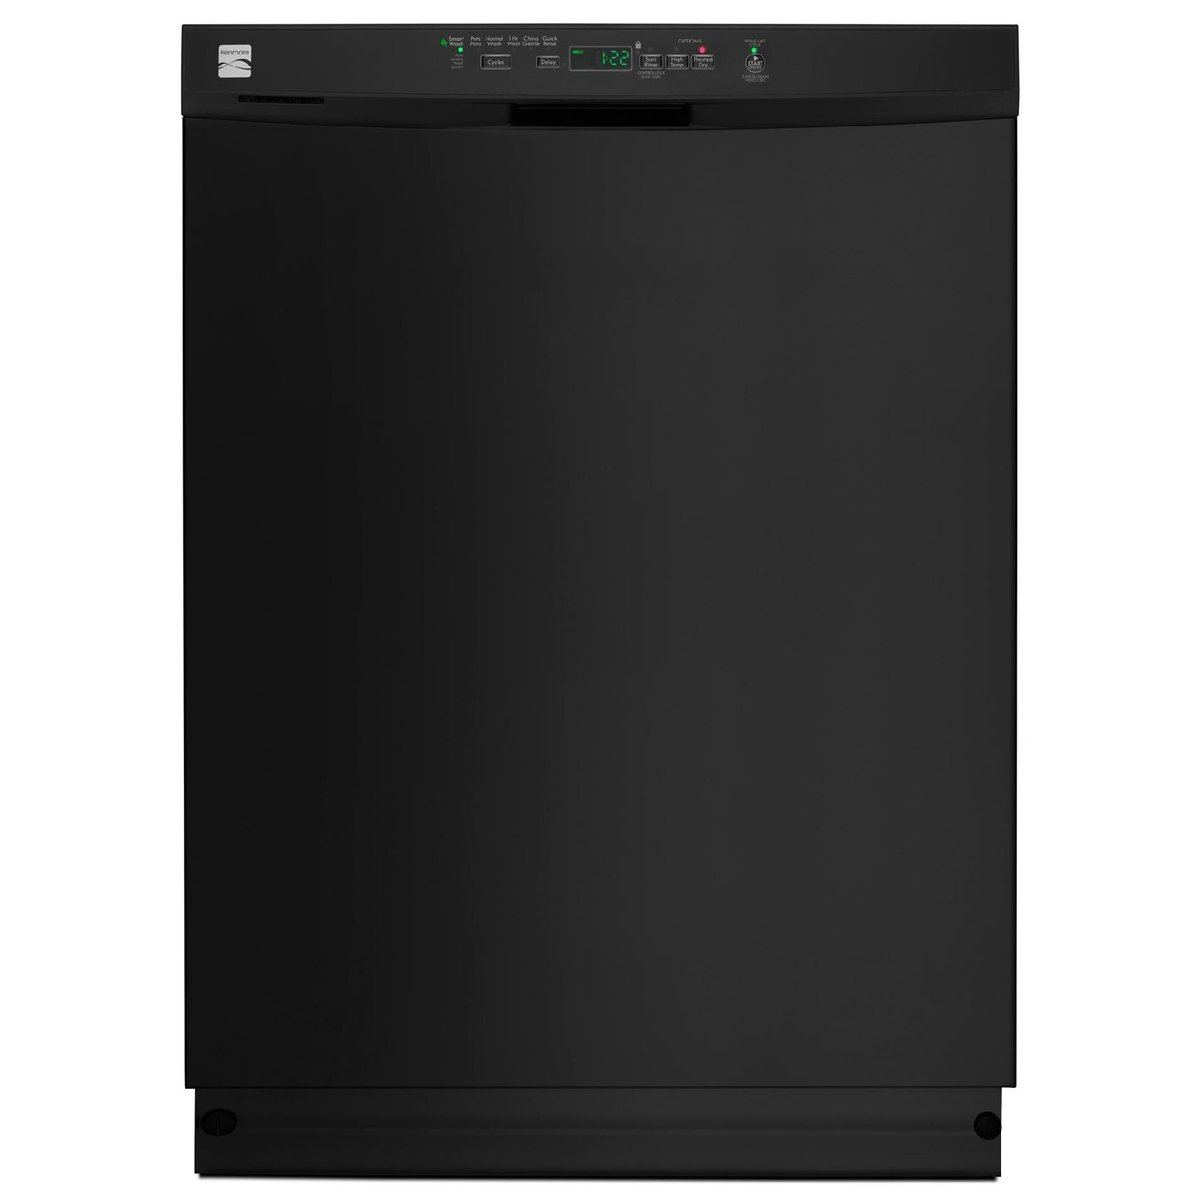 Kenmore 13099 Dishwasher with Power Wave Spray Arm/Nylon Racks, Black